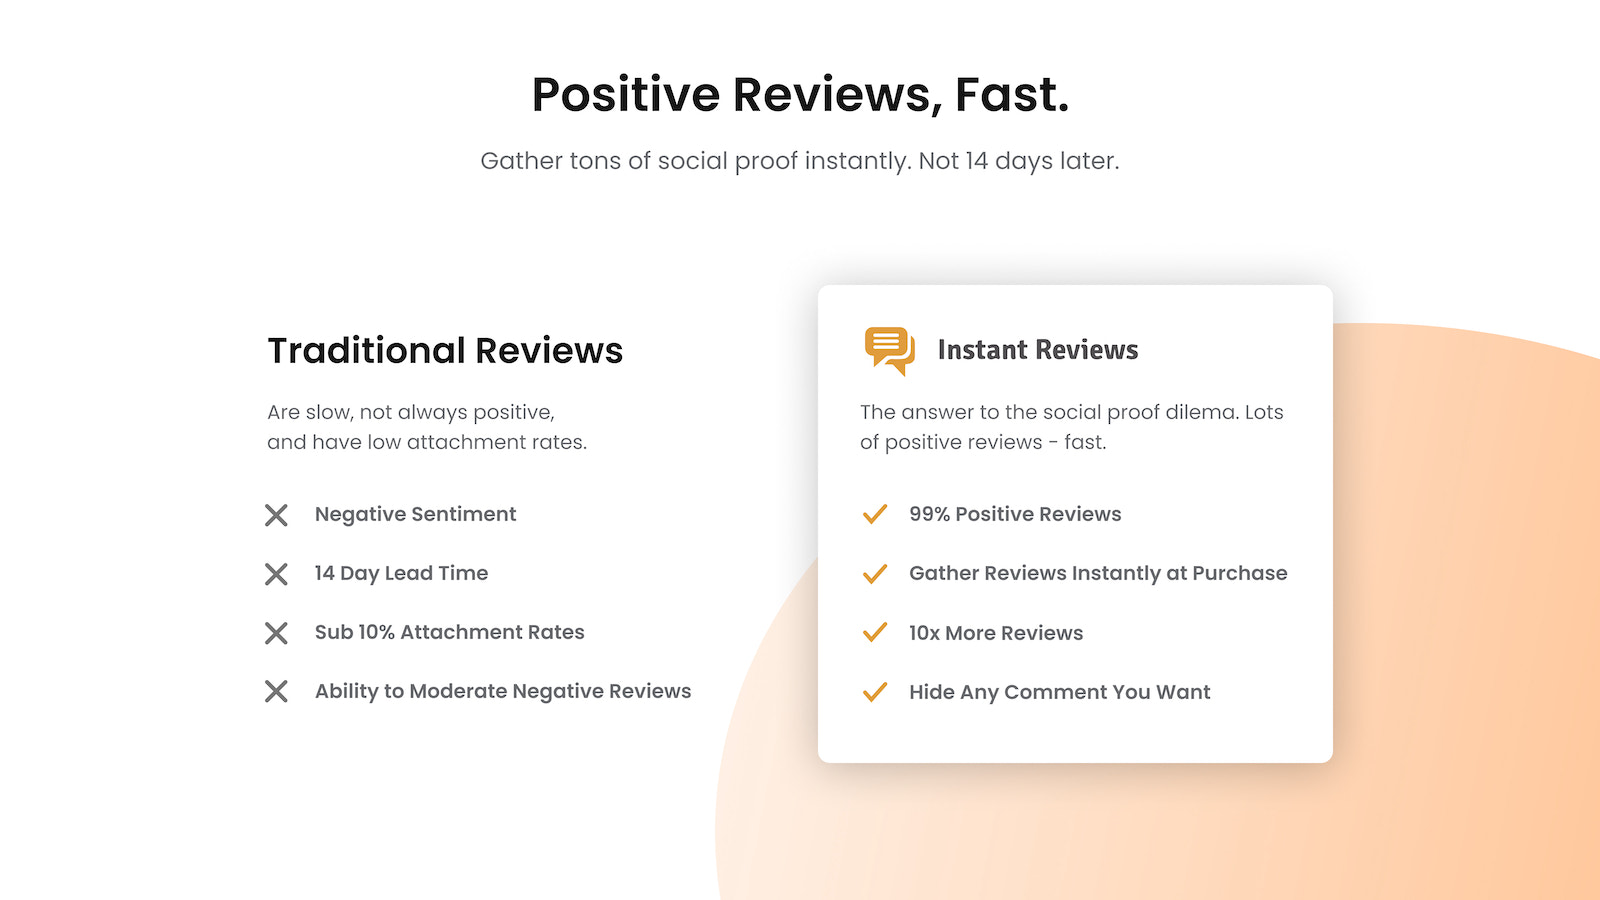 Traditional reviews versus instant reviews